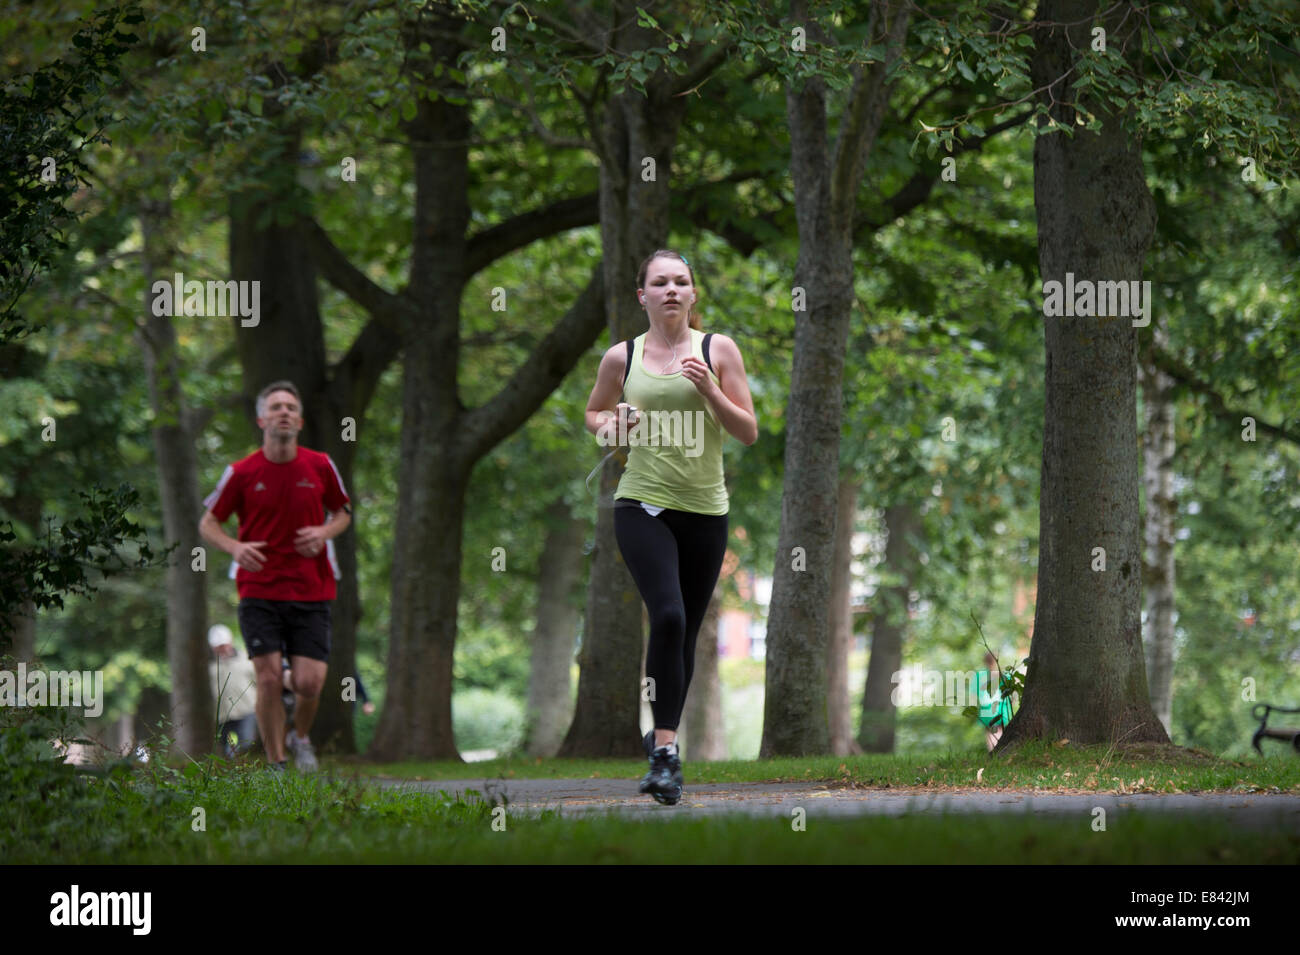 Runners of all ages taking part in the global weekly 5k Adidas-sponsored 'ParkRun' in Plascrug avenue, Aberystwyth - Stock Image